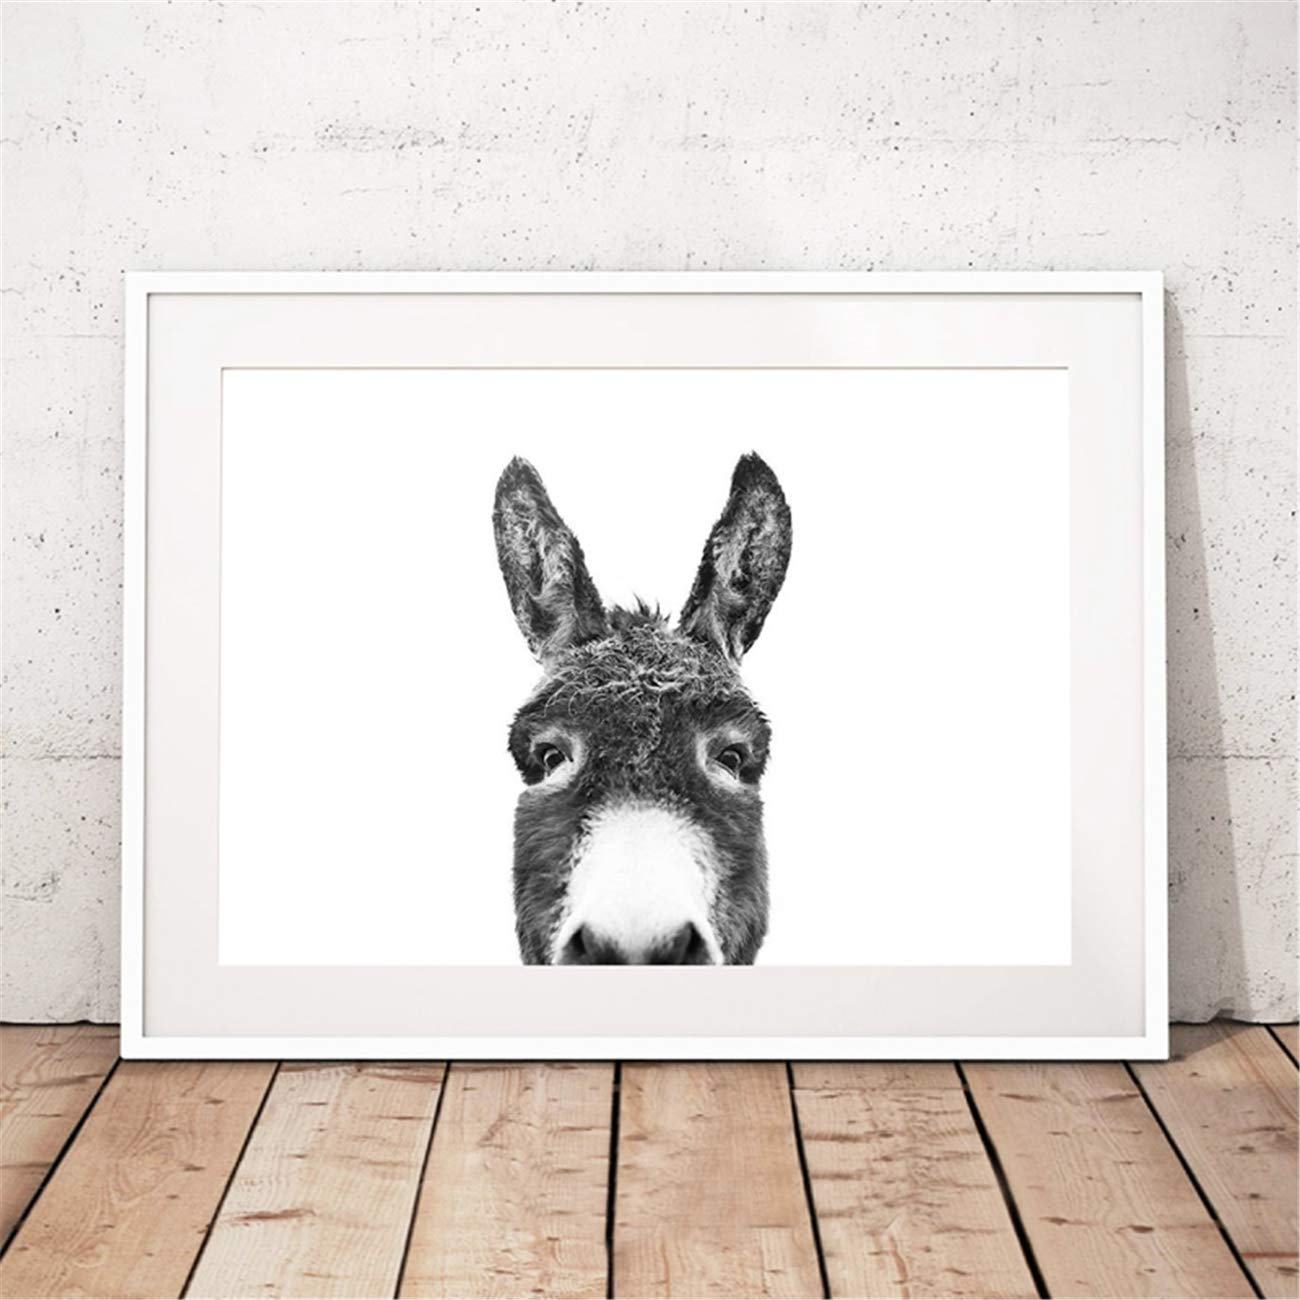 Canvas Wall Art Peekaboo Animal Face Donkey Print Poster Painting Picture for Living Room Bedroom Home Decoration Artwork No Frame 20x28inch